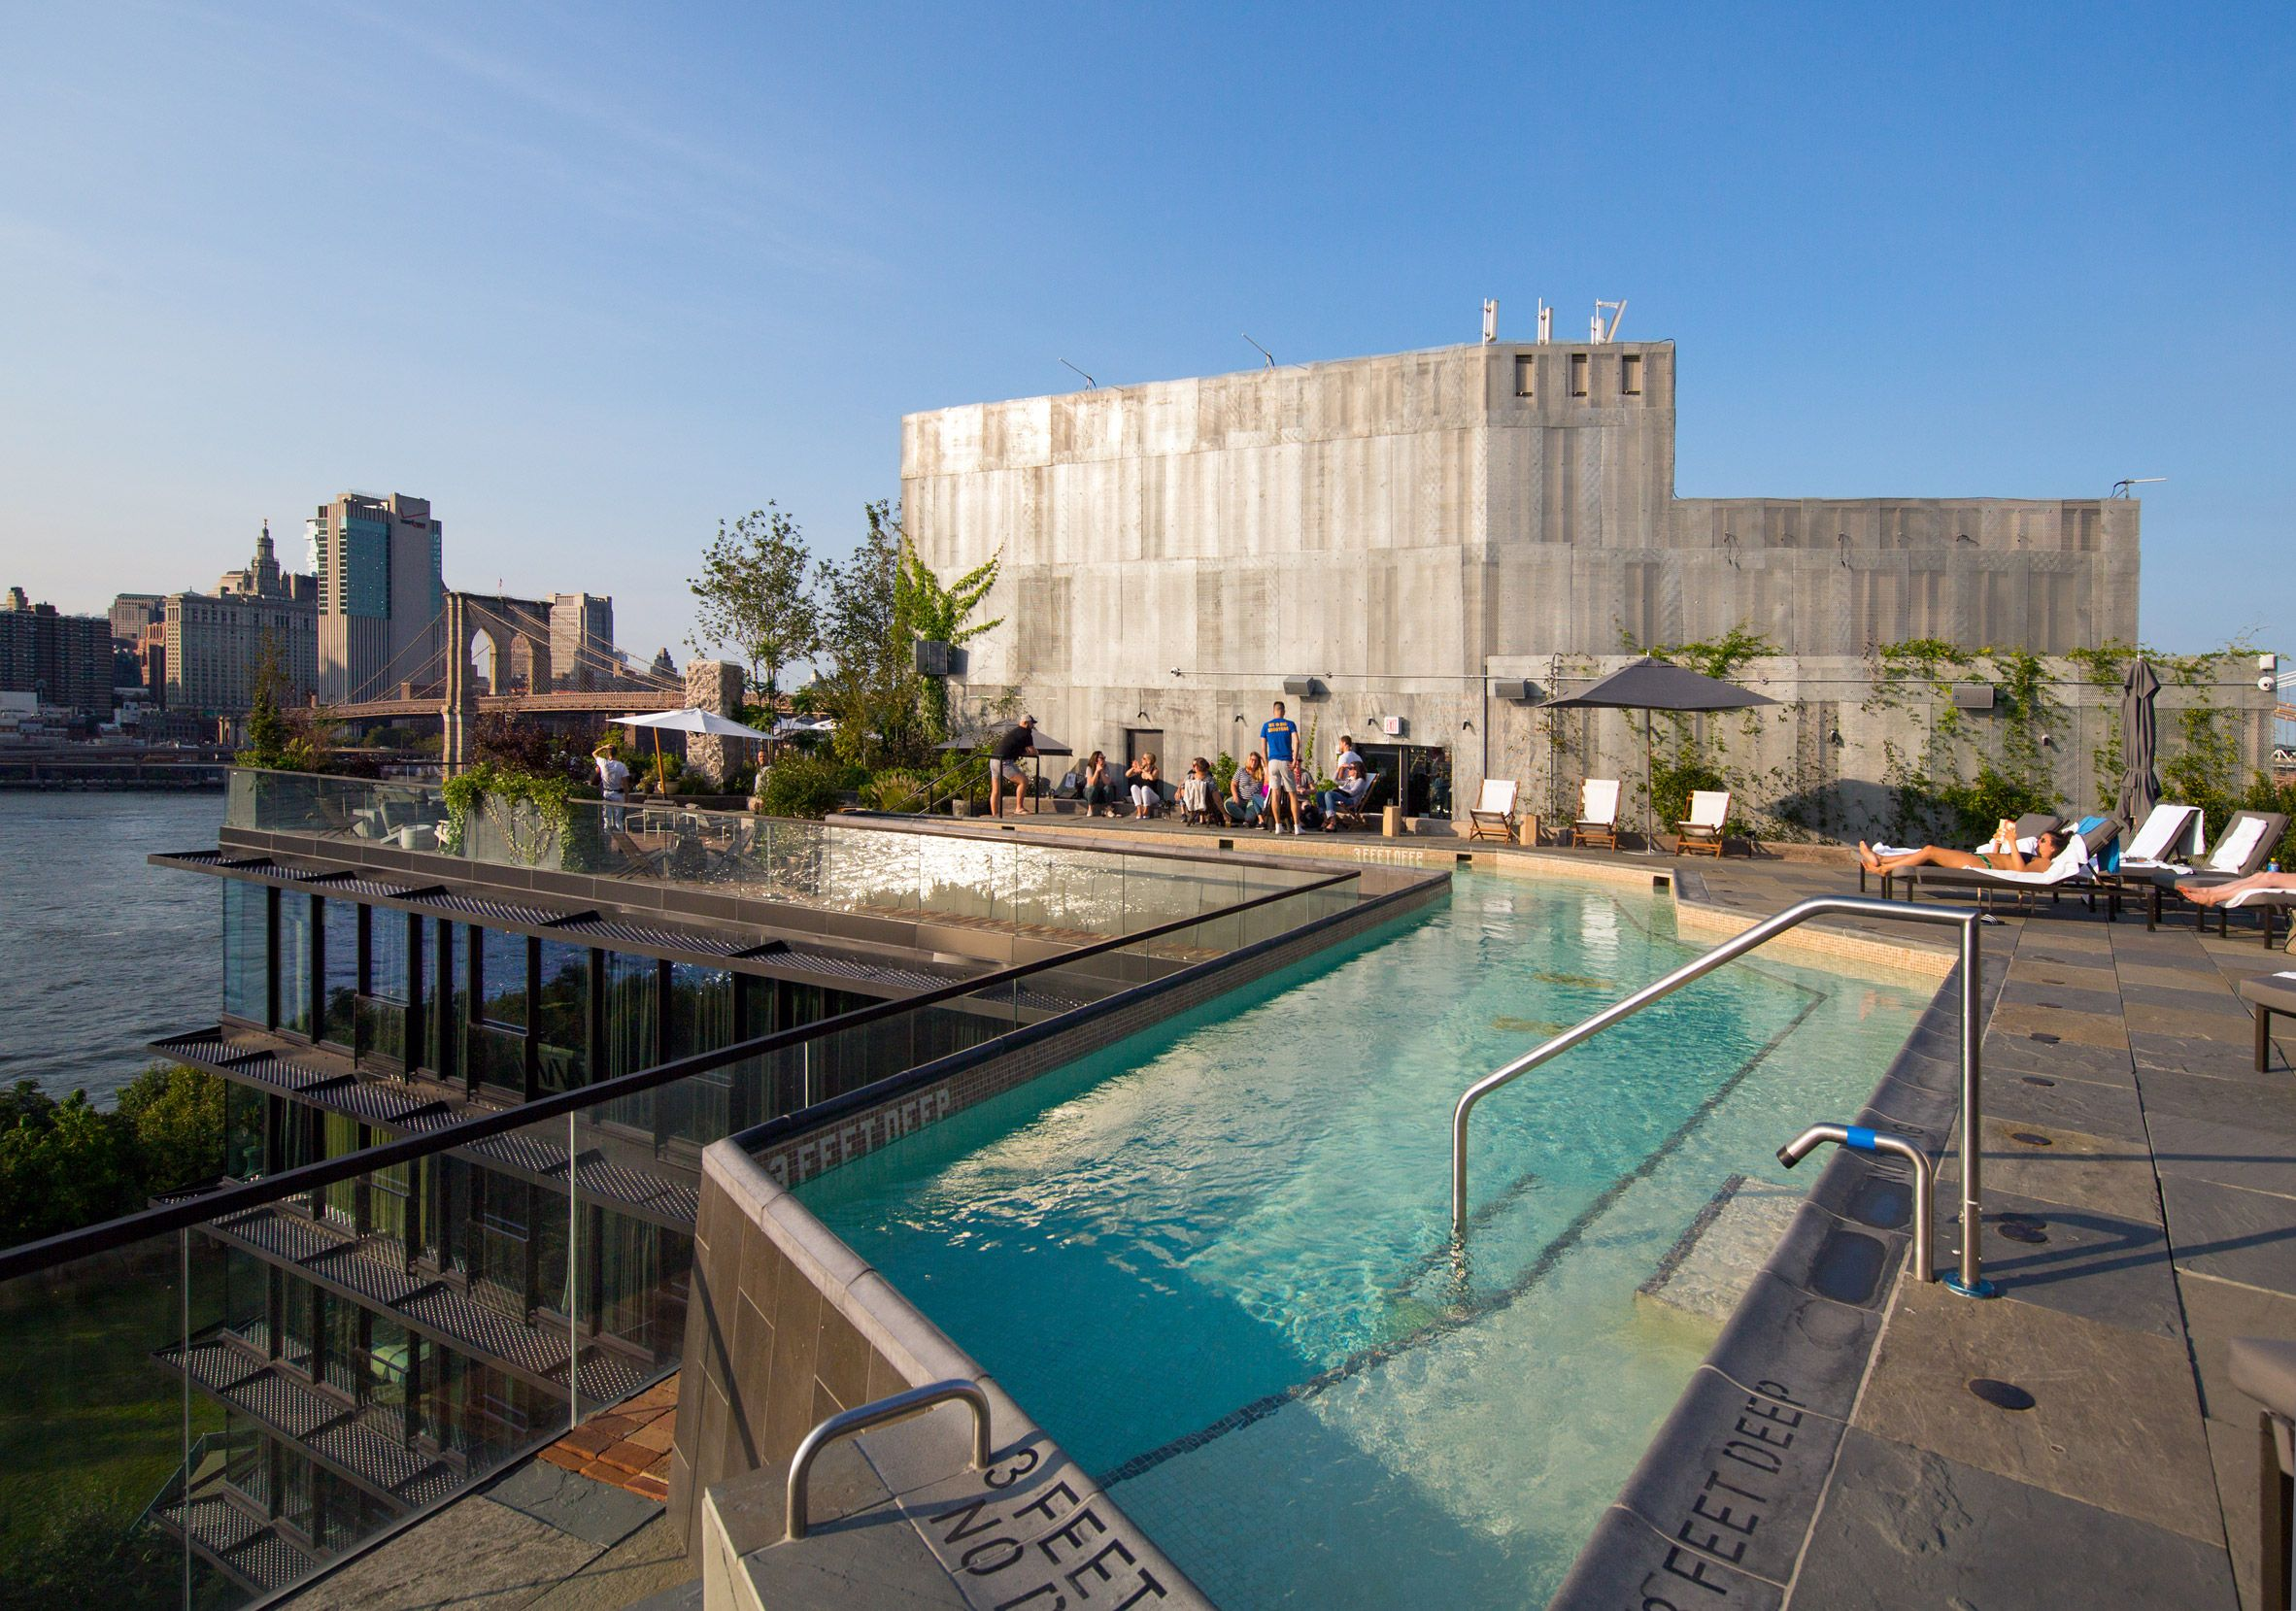 The 1 Hotel Brooklyn Bridge Designed By Marvel Architects Has Been Nominated In Seven Categories At The Ahead Ameri Pier House Architect Brooklyn Bridge Park